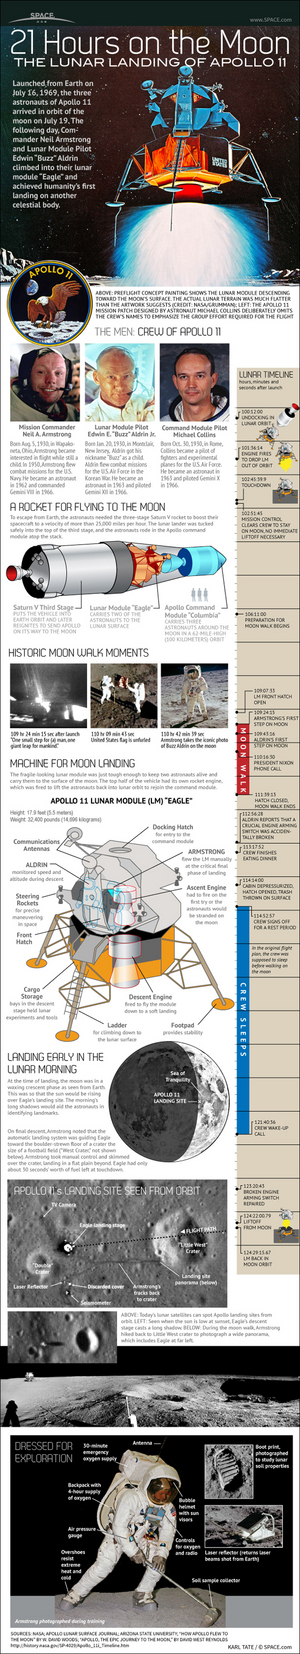 "NASA's historic Apollo 11 moon mission landed the first astronauts on the lunar surface on July 20, 1969. <a href=""http://www.space.com/17411-apollo-11-moon-landing-explained-infographic.html"">See how the mission worked in this Space.com infographic</a>."